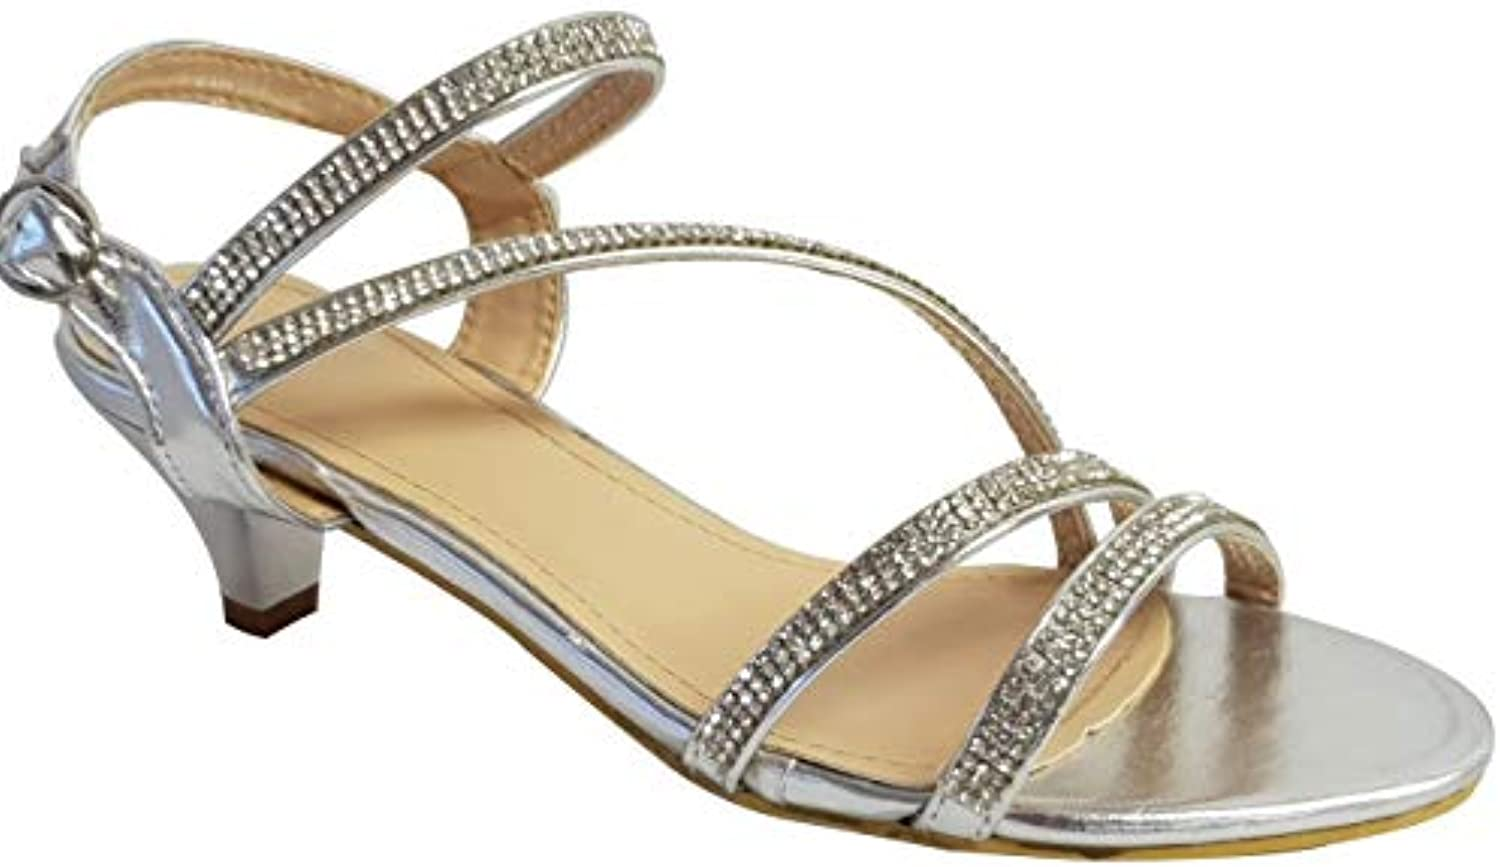 618502f801af6 Skywalker Ladies nhta-27606 Diamante Strappy Low Heel Strappy Prom  B07FPP7FYH Party Wedding Sandals Size 3 to 8 B07FPP7FYH Parent 193a4df